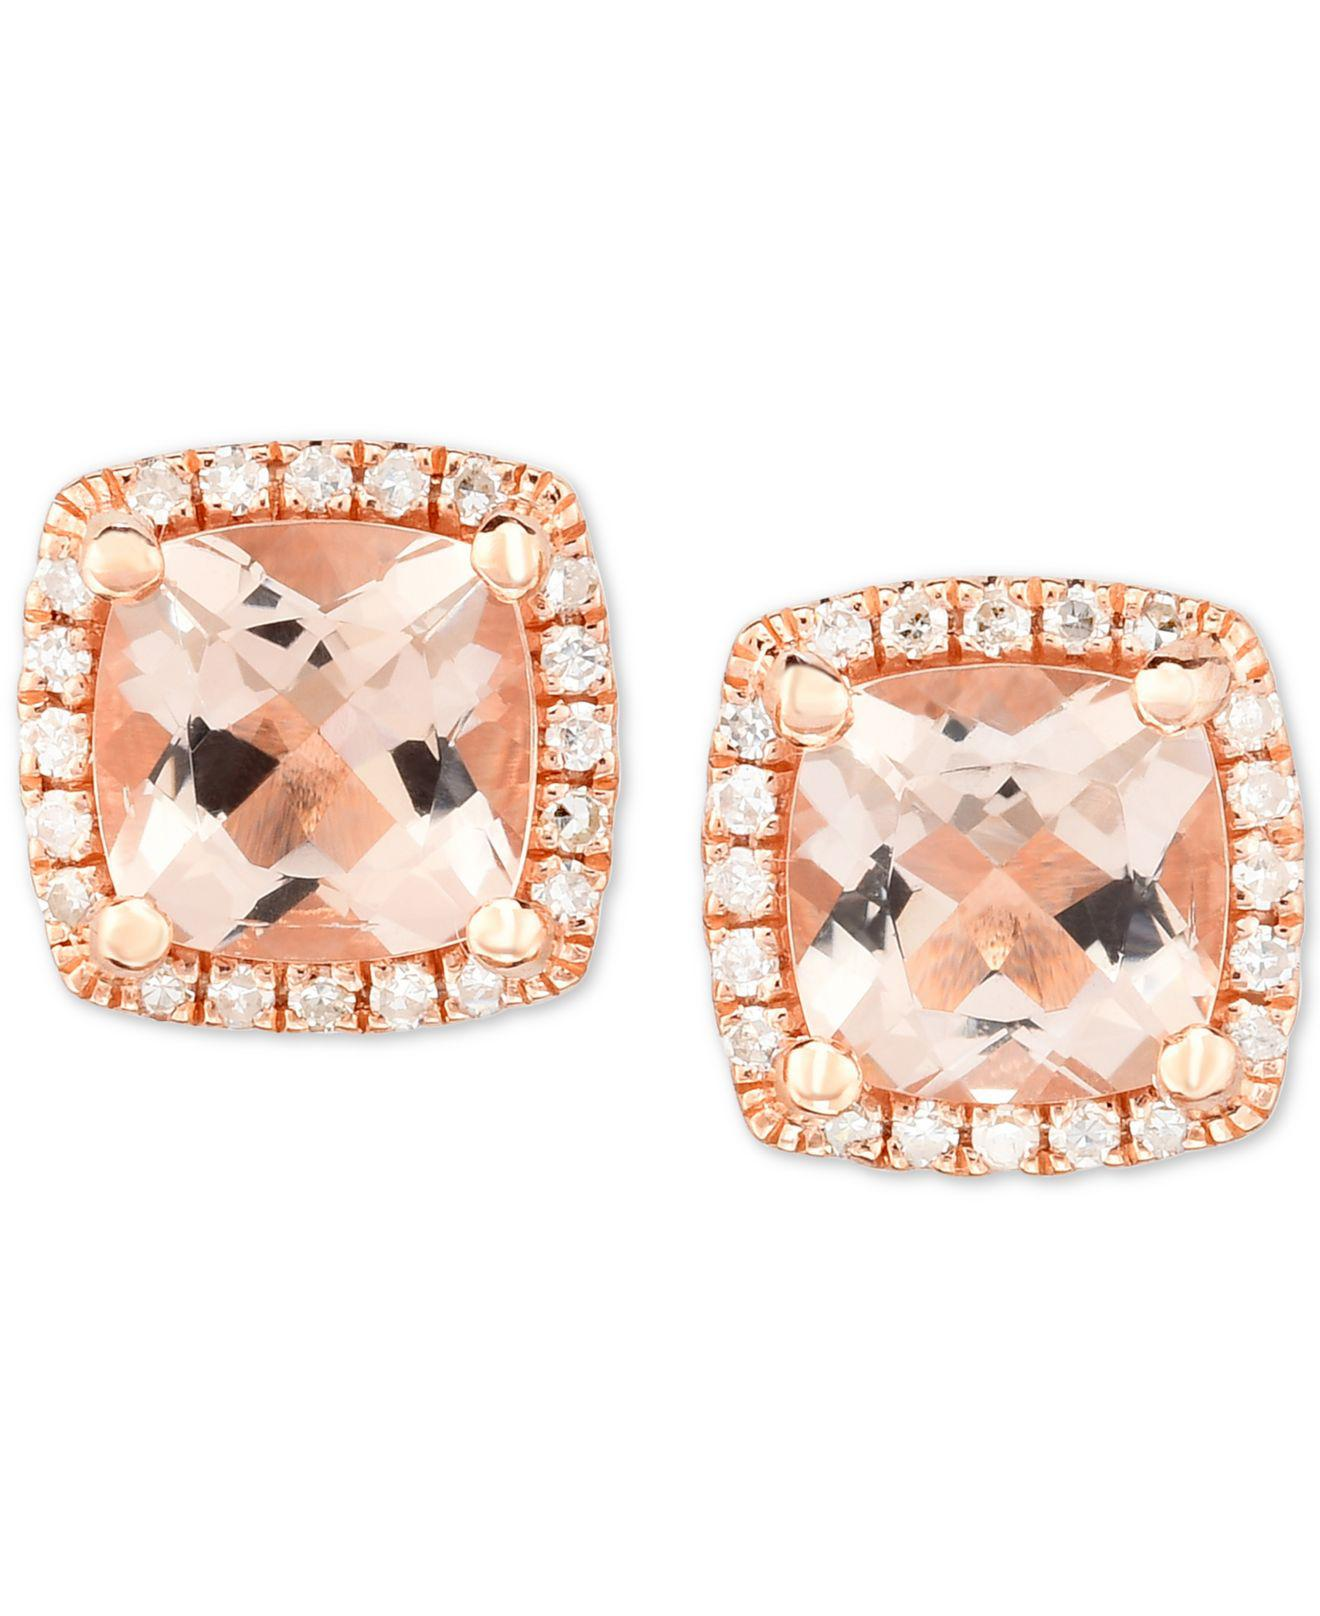 large p morganite context gold and halo earrings stud rose diamond